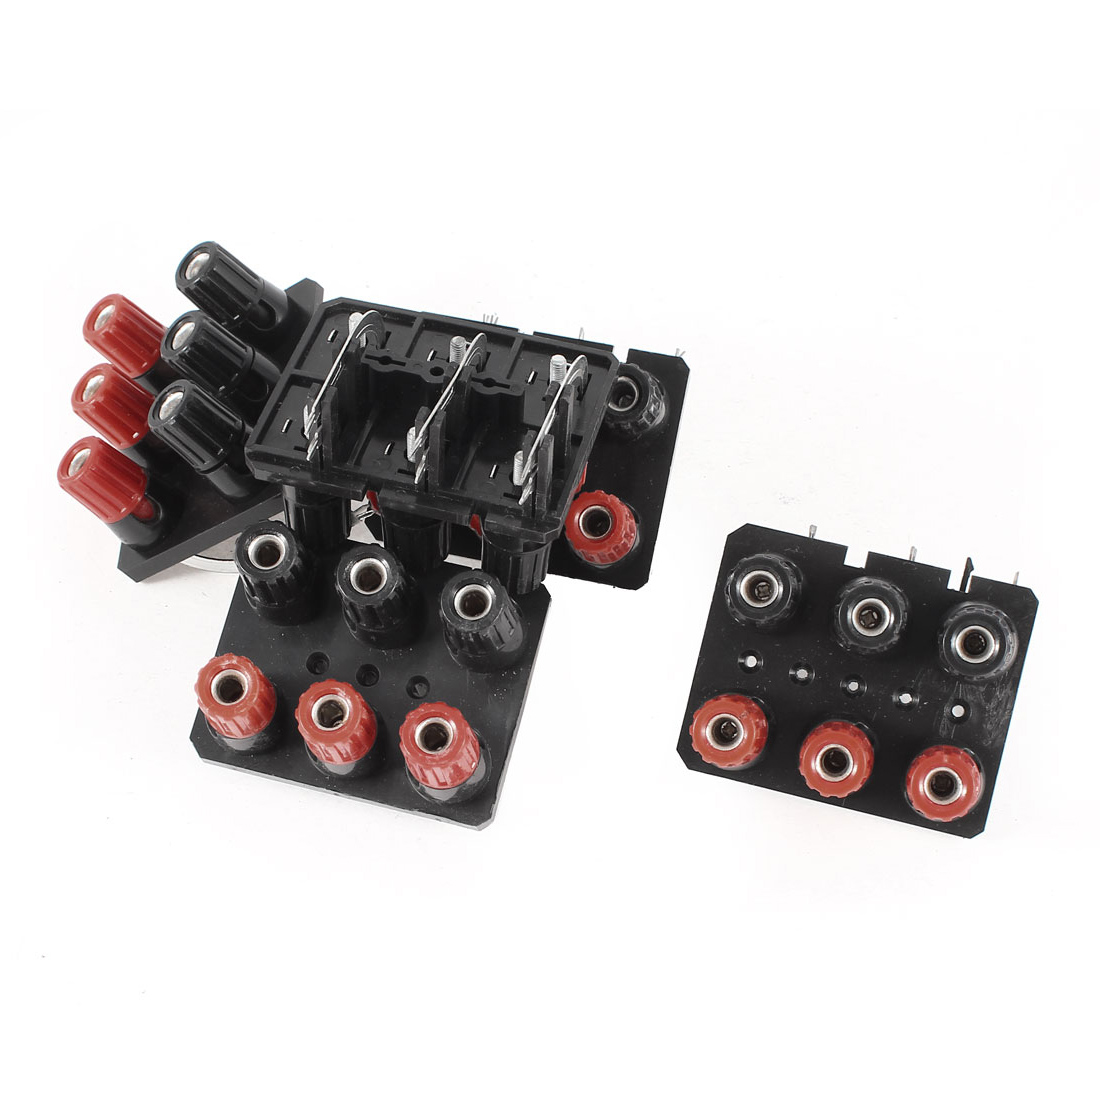 5 Pcs Dual Row Wall-Plated Speaker 6 Position 6 Curved Pin Binding Post Black Red